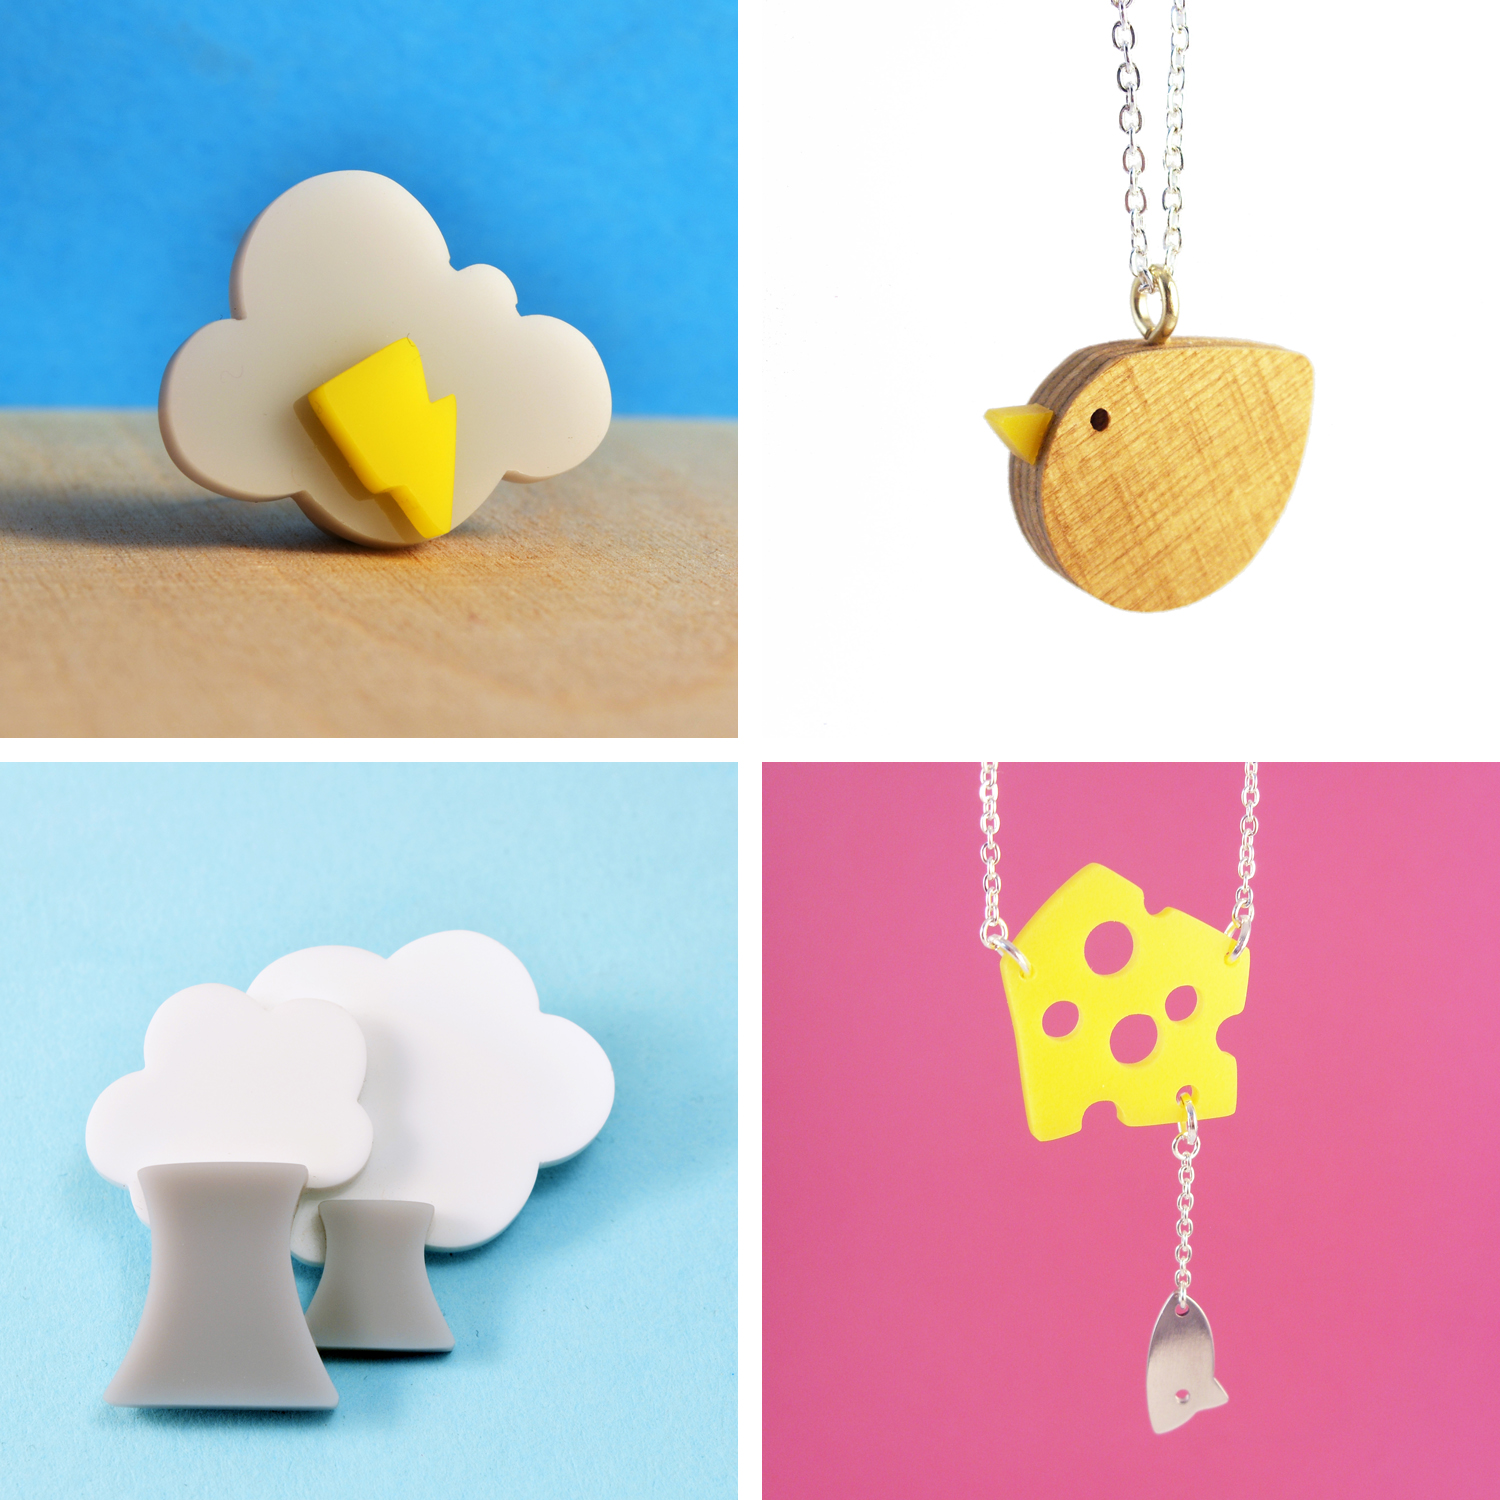 I am acrylic, cloud brooch, bird necklace, power station, cheese necklace